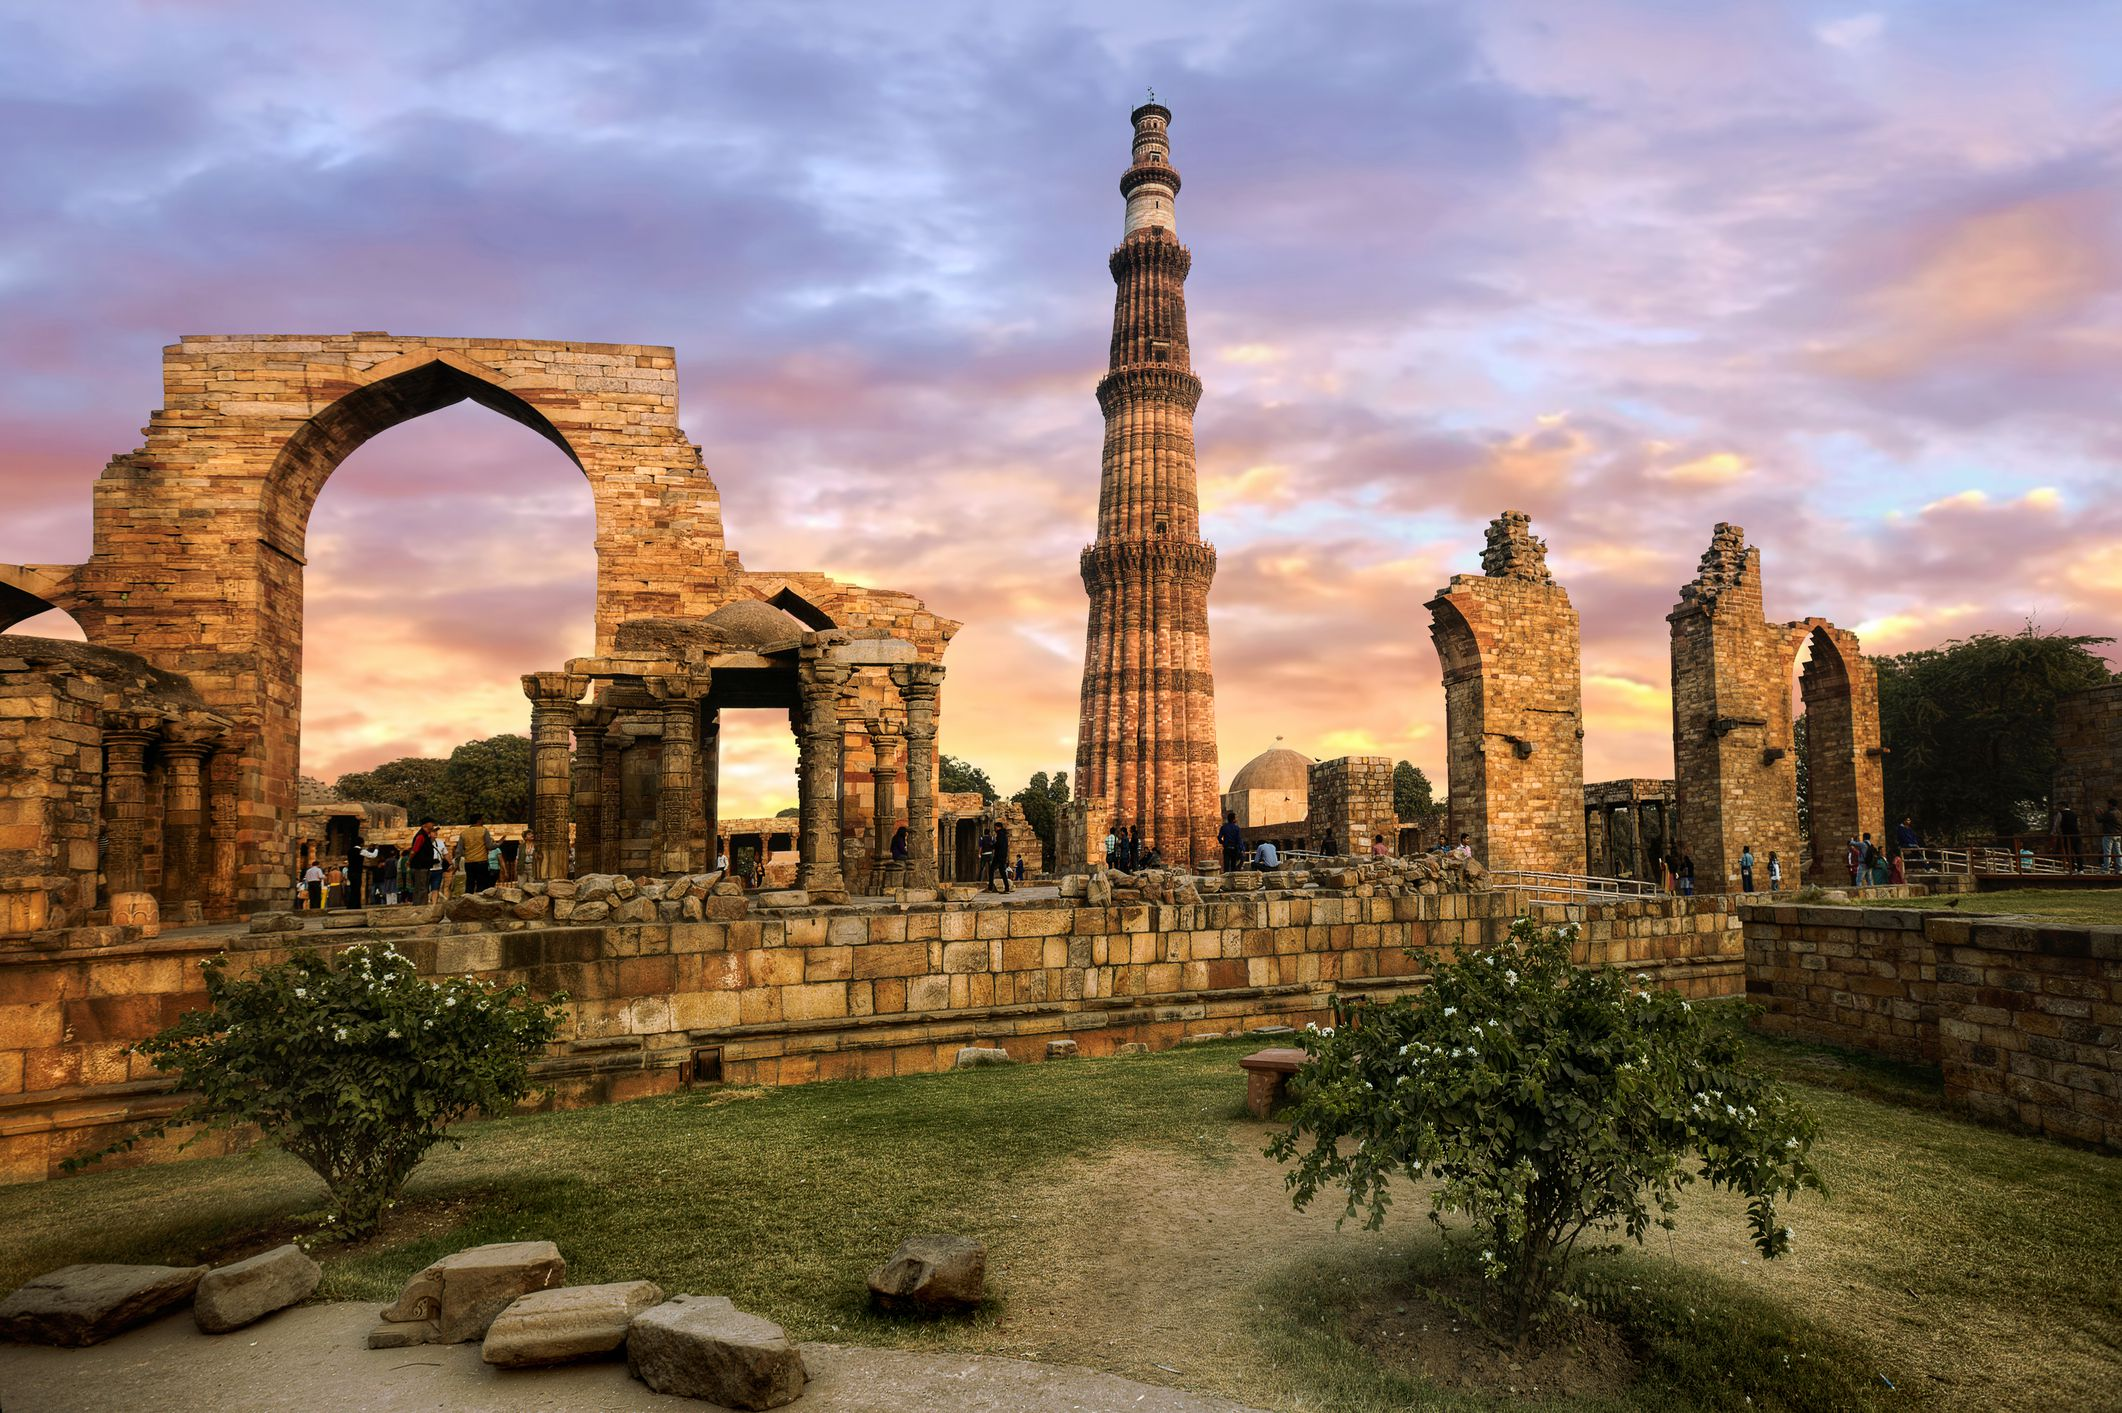 Qutab Minar, tallest brick minarets in the world